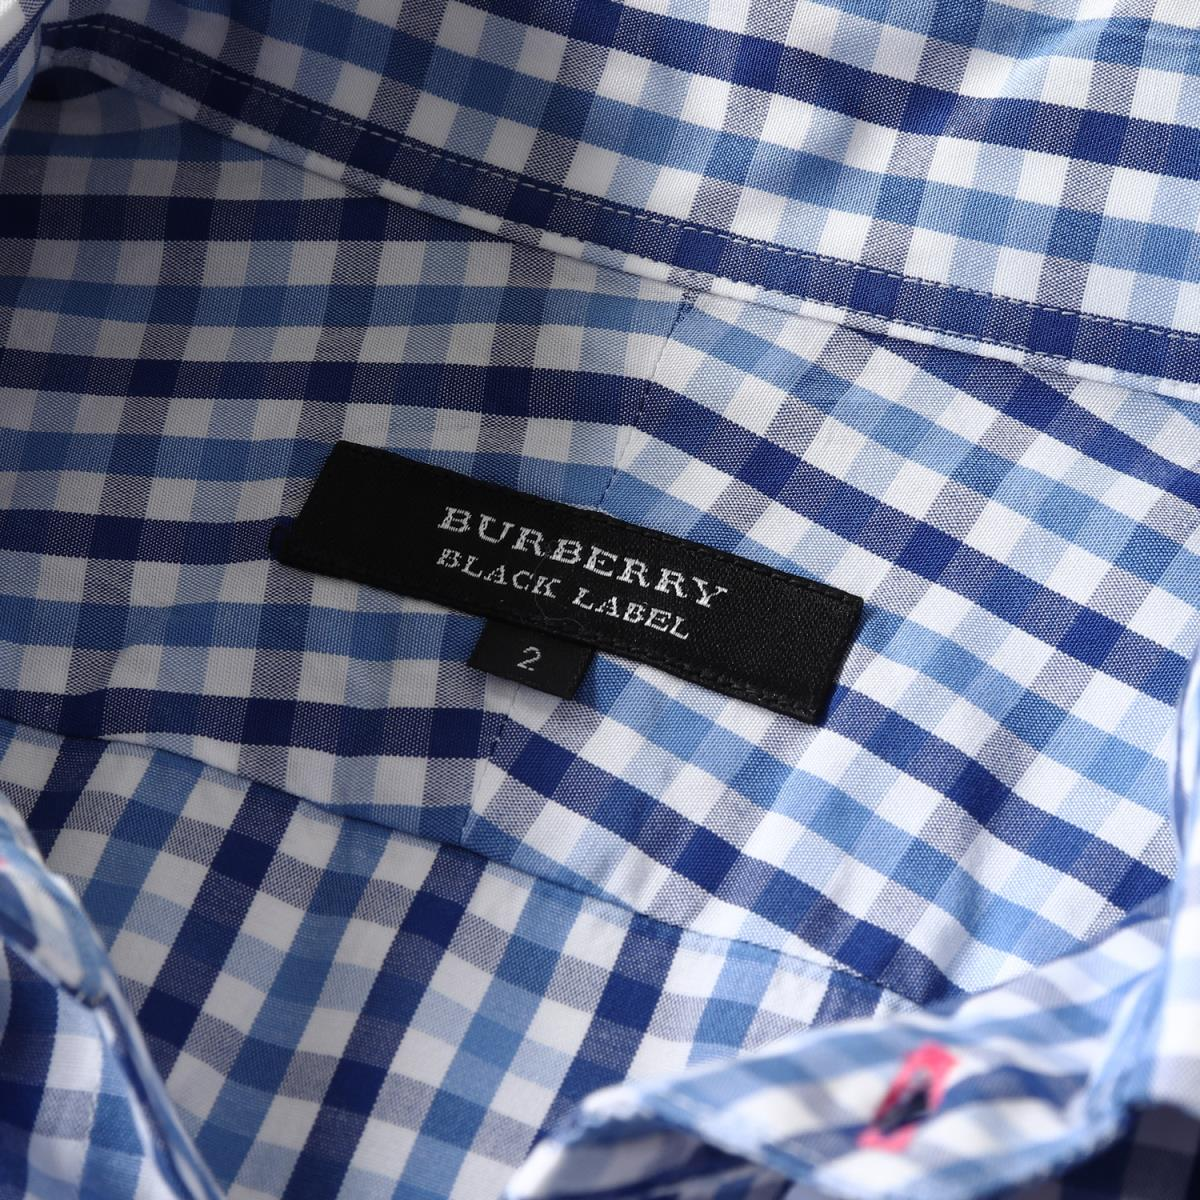 090a2664 ... BURBERRY (Burberry) icon embroidery gingham checked pattern cotton  button-down shirt blue 2 ...